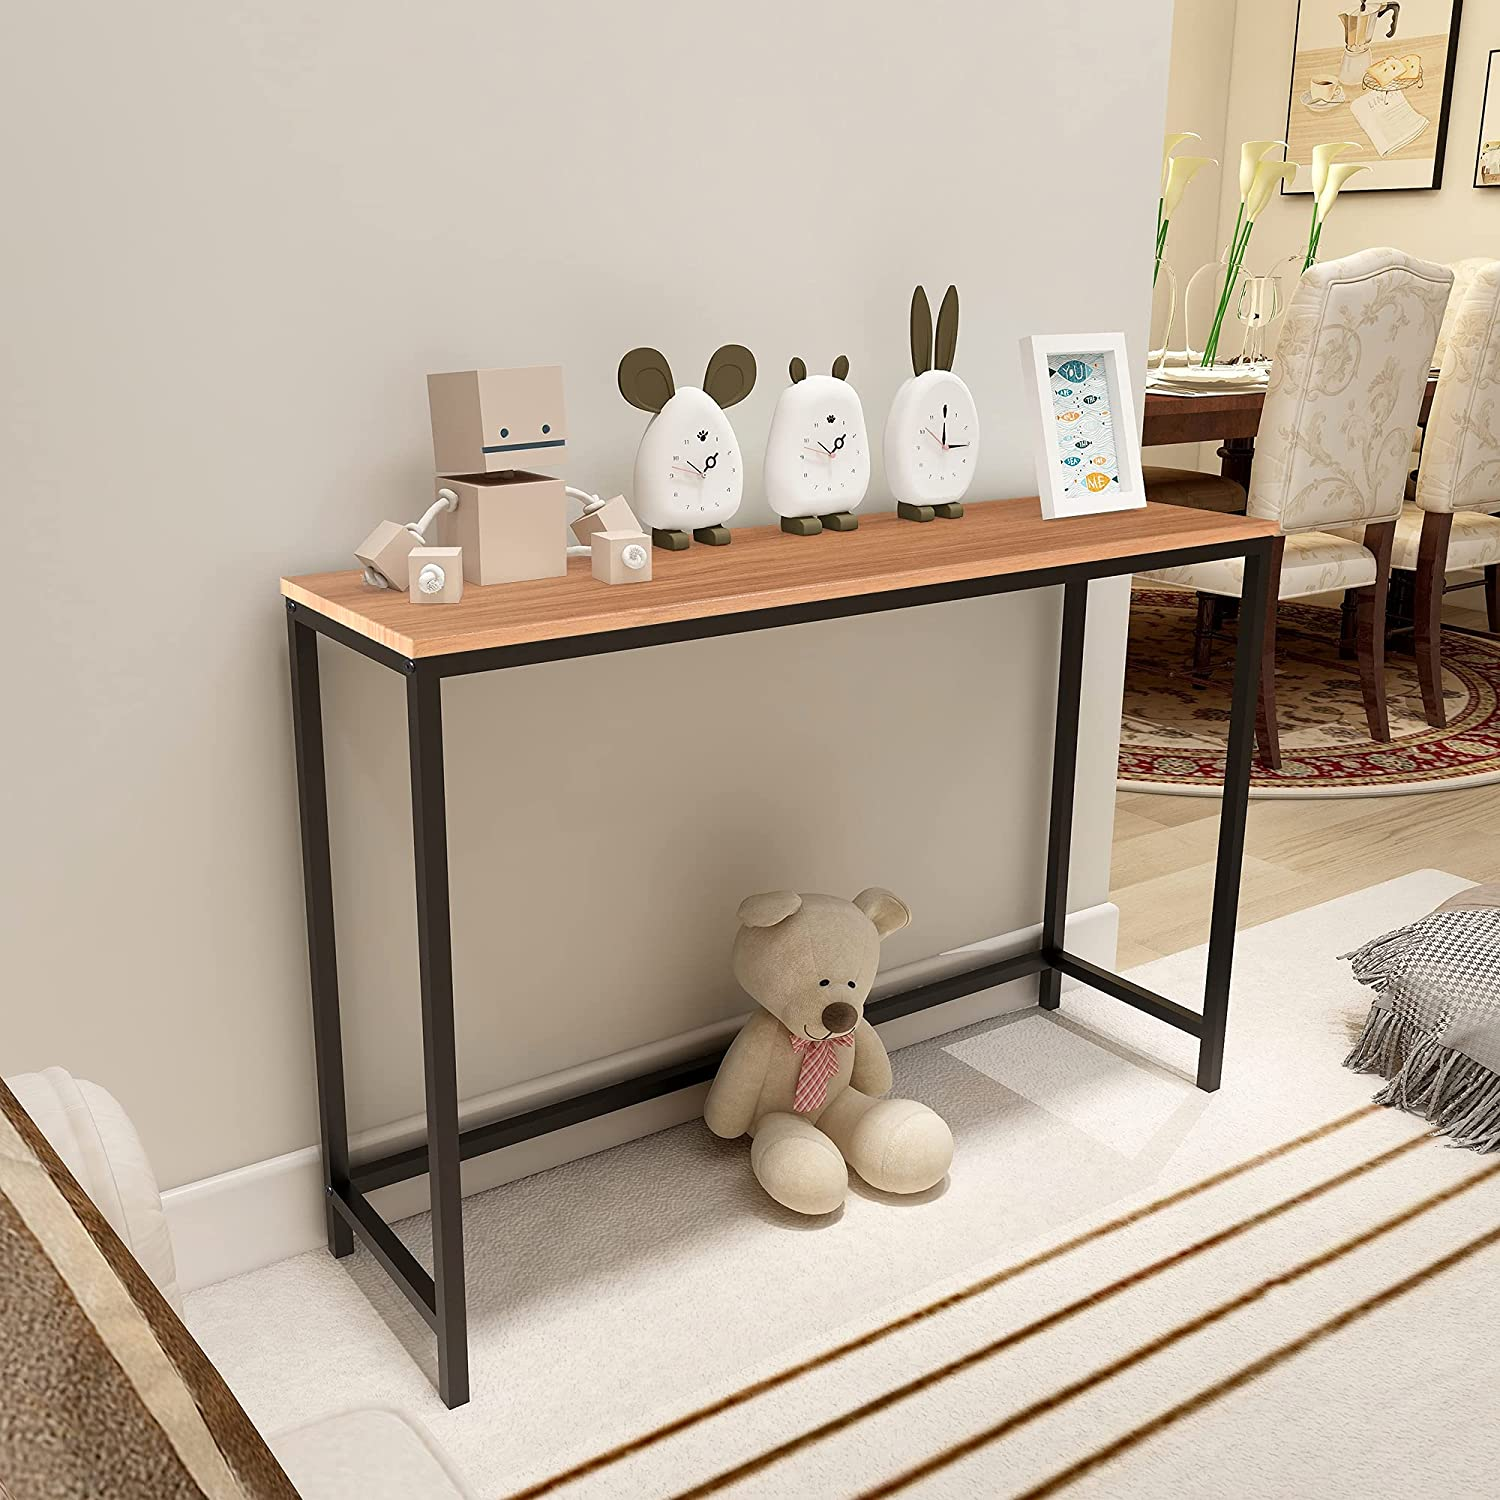 Console Sofa Tables End Table Computer Desk Coffee Snack Console Tables for Living Room Or Corridor Hallway Teak Color Wood